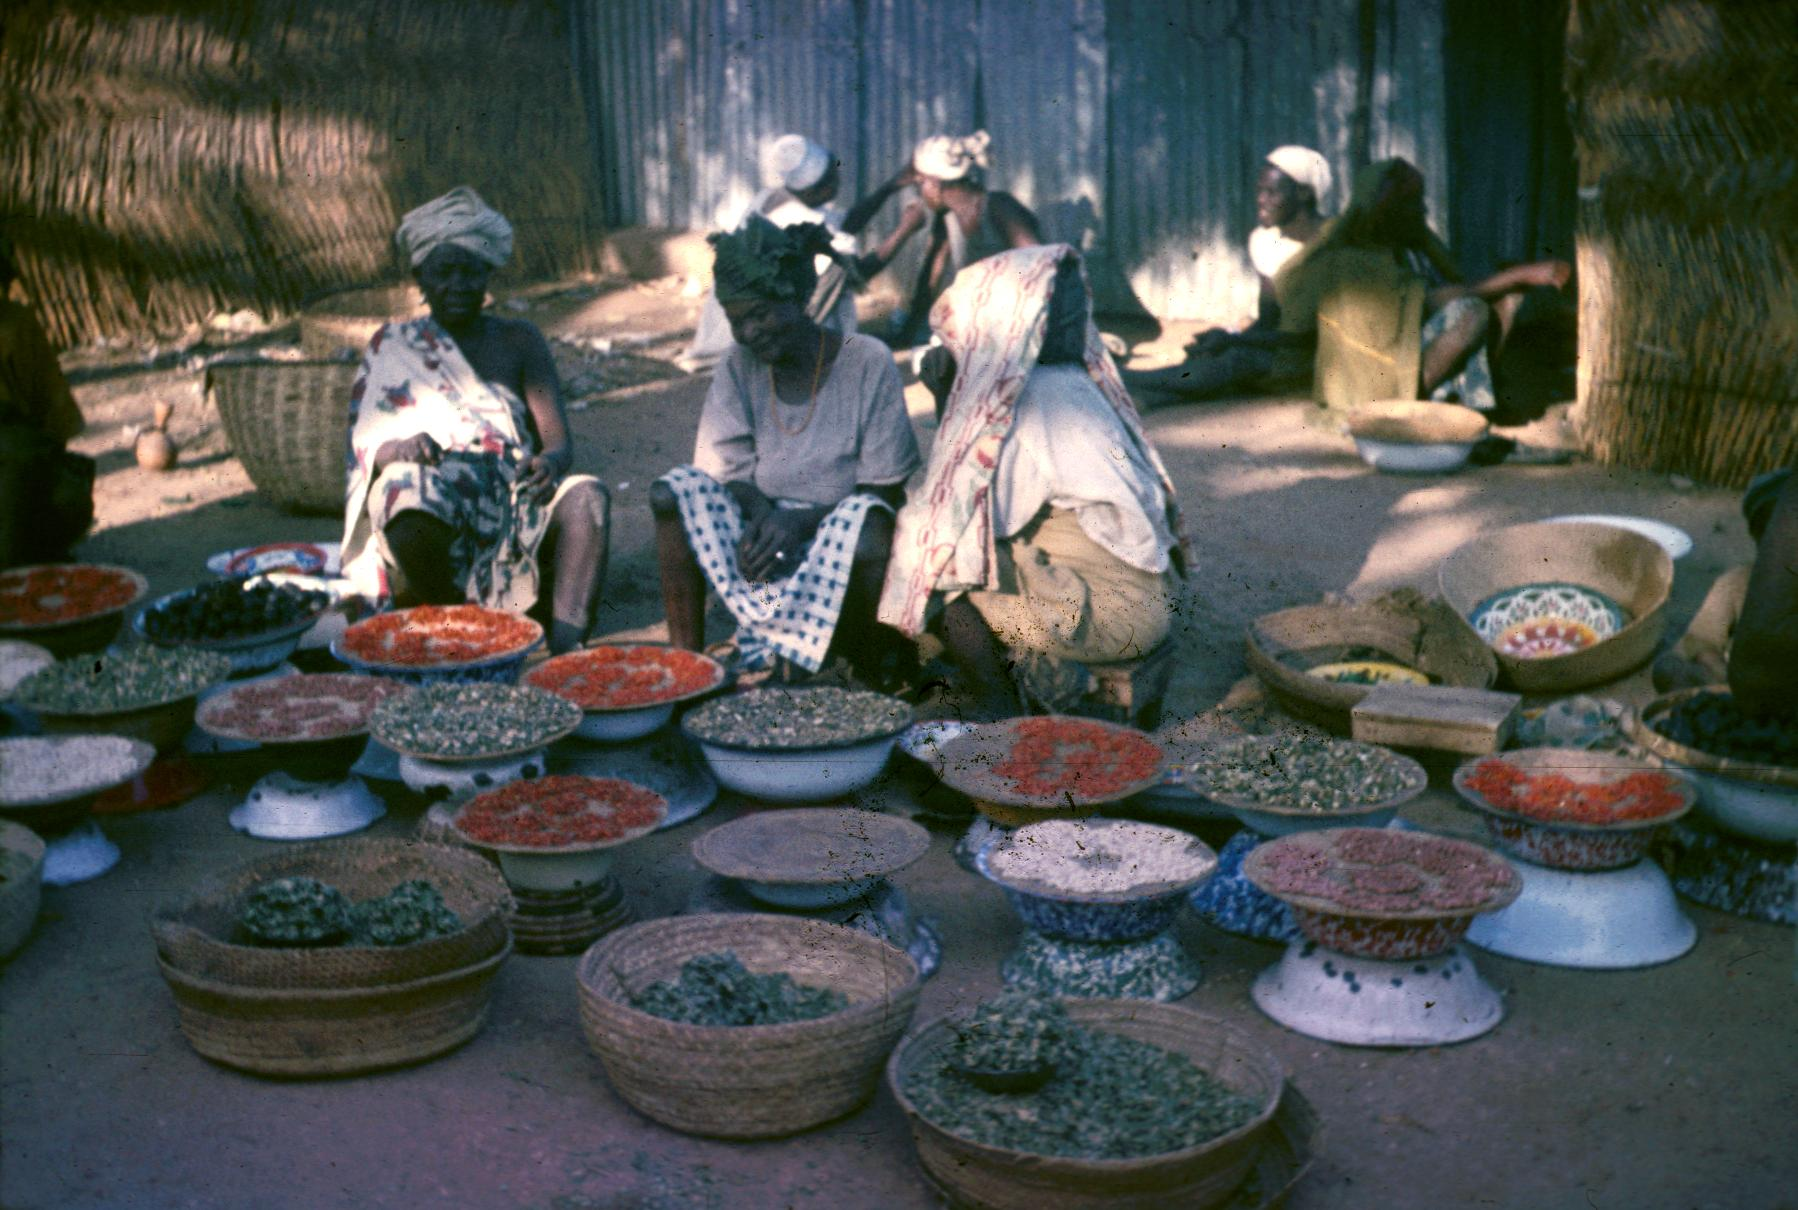 Women Selling Foods and Spices in Zaria